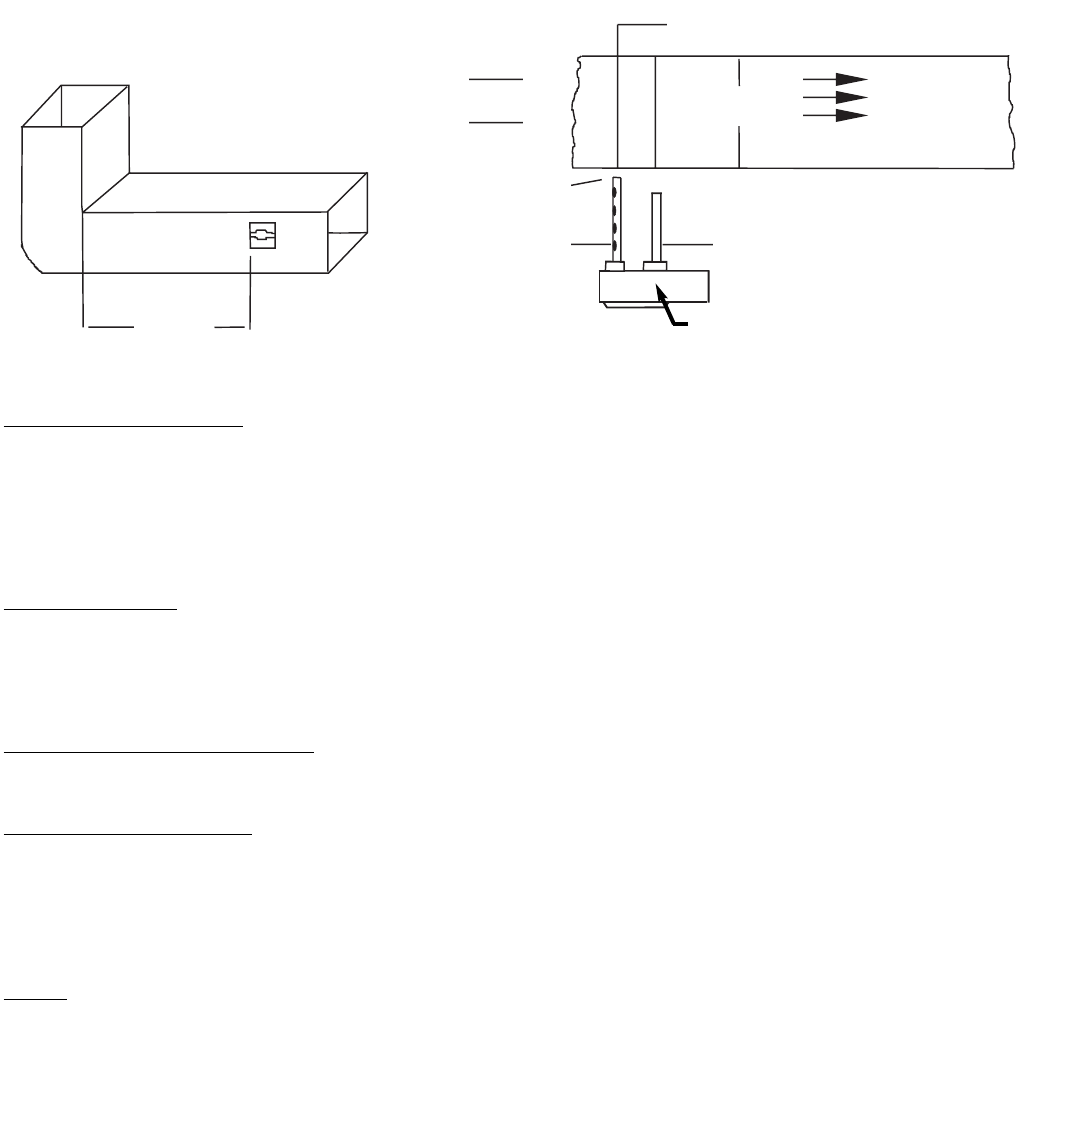 hight resolution of in installations where it is impossible to adhere to the six duct width requirement units can be installed closer but as far from inlets bends or